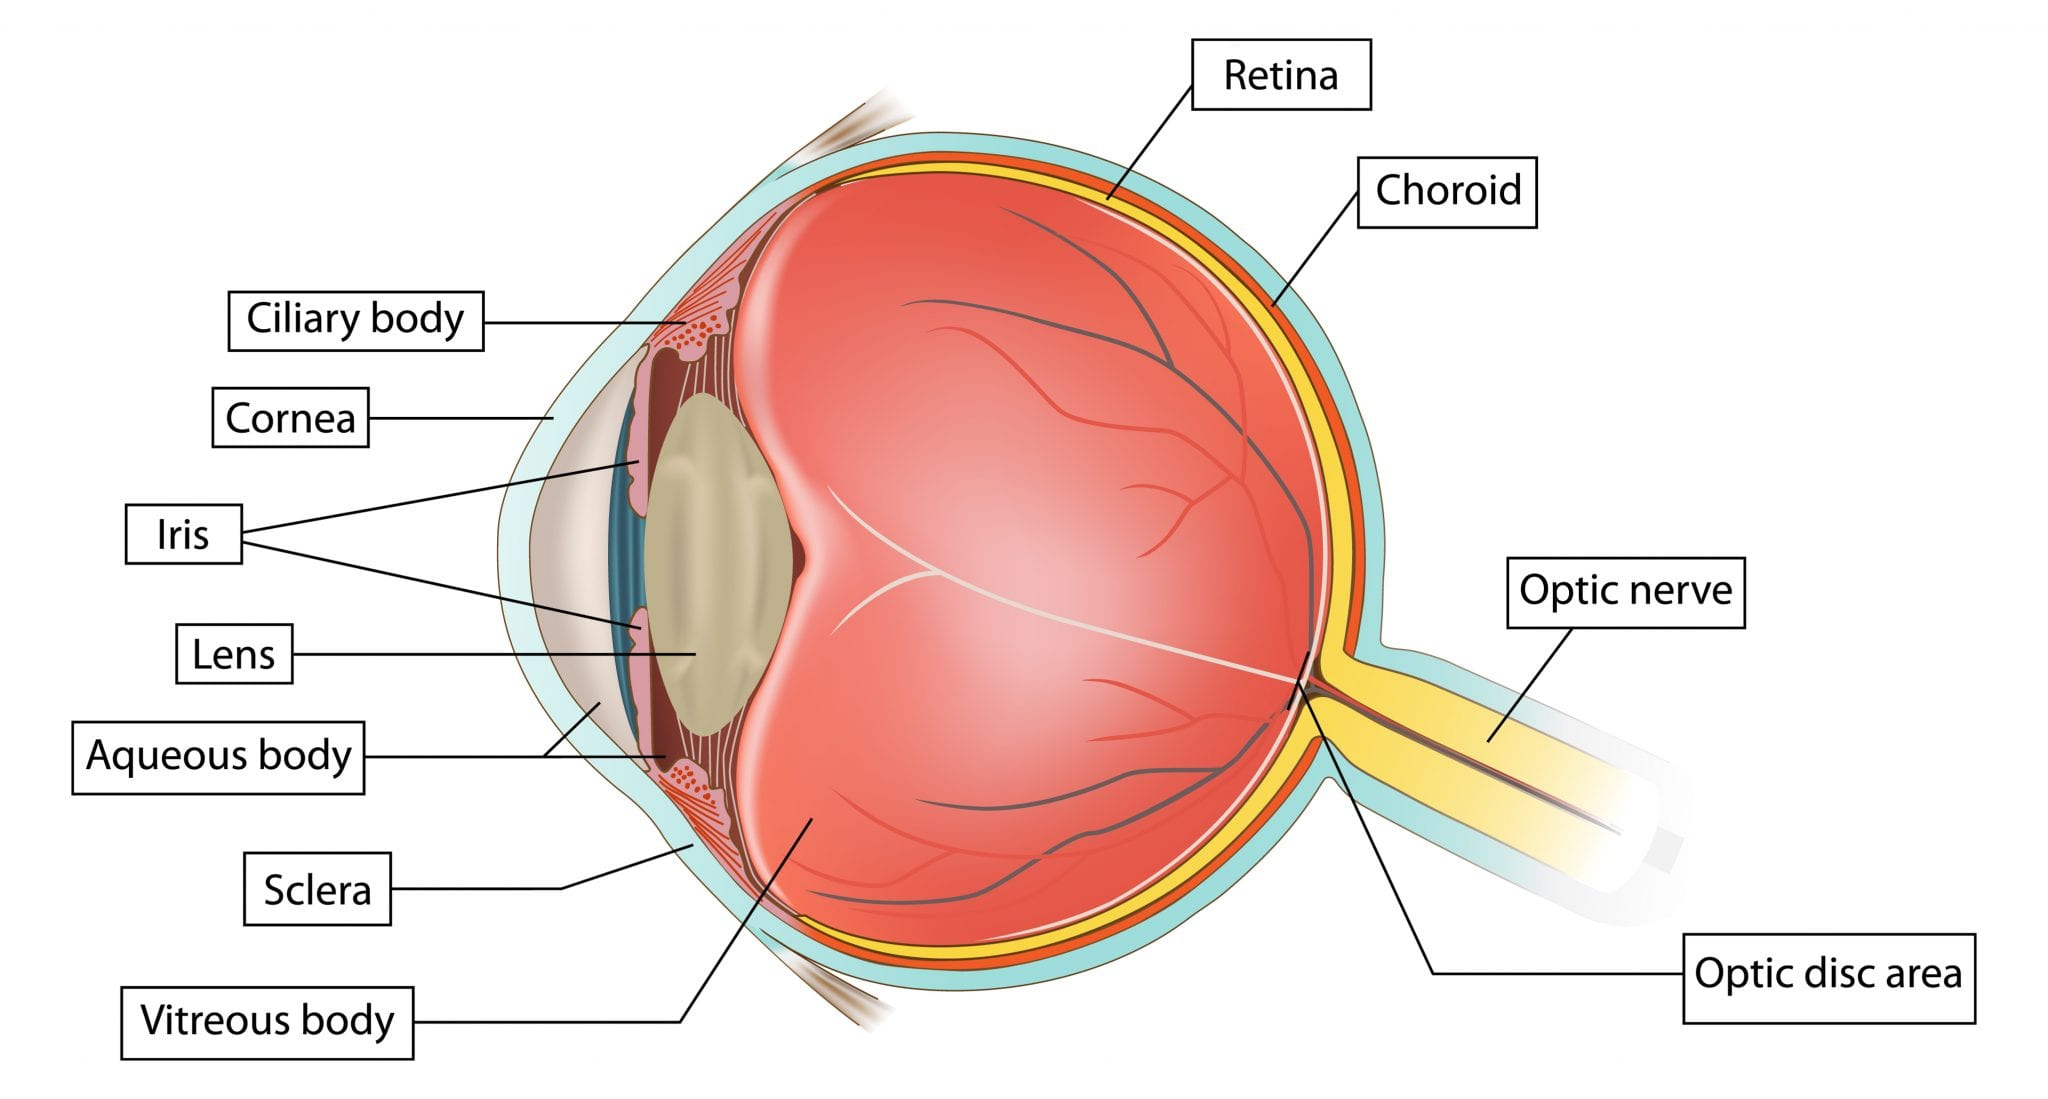 eye anatomy - optometrist in petaling jaya | optical shop ... eye diagram label foeva label eye diagram quiz #11